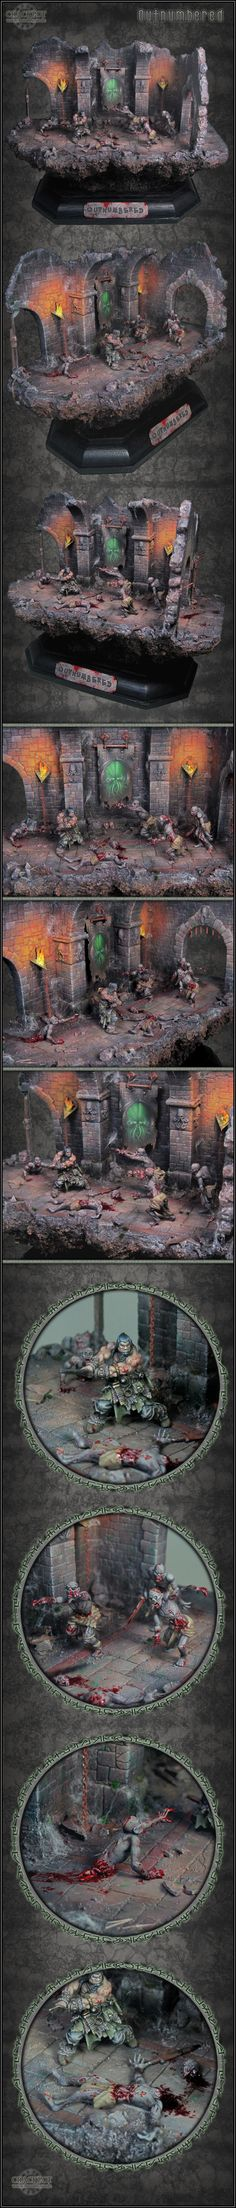 CoolMiniOrNot - Outnumbered - Wicked Cthulu-Zombie Diorama by Crackpot